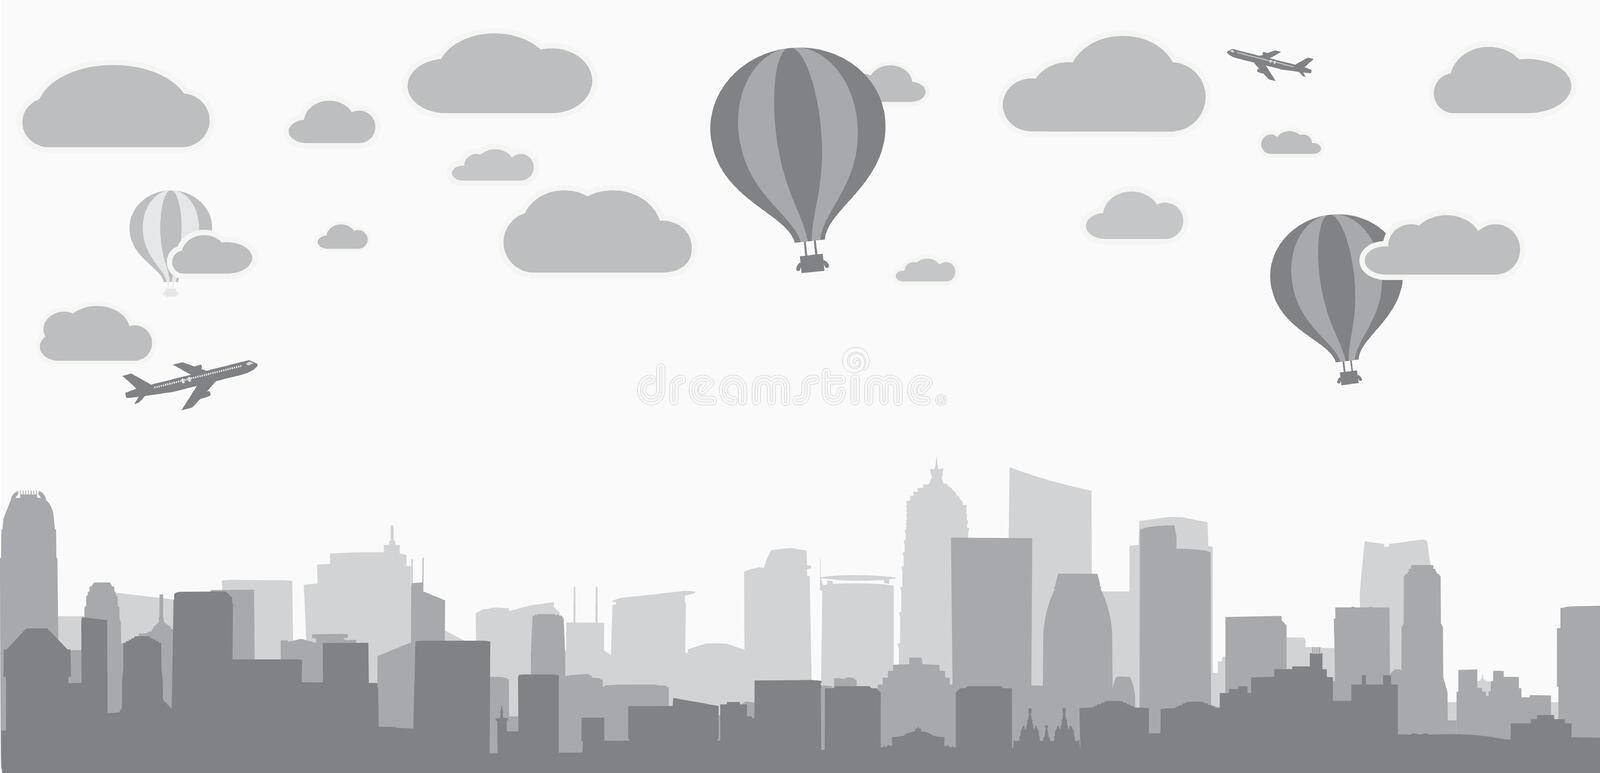 City background for advertising real estate services vector illustration